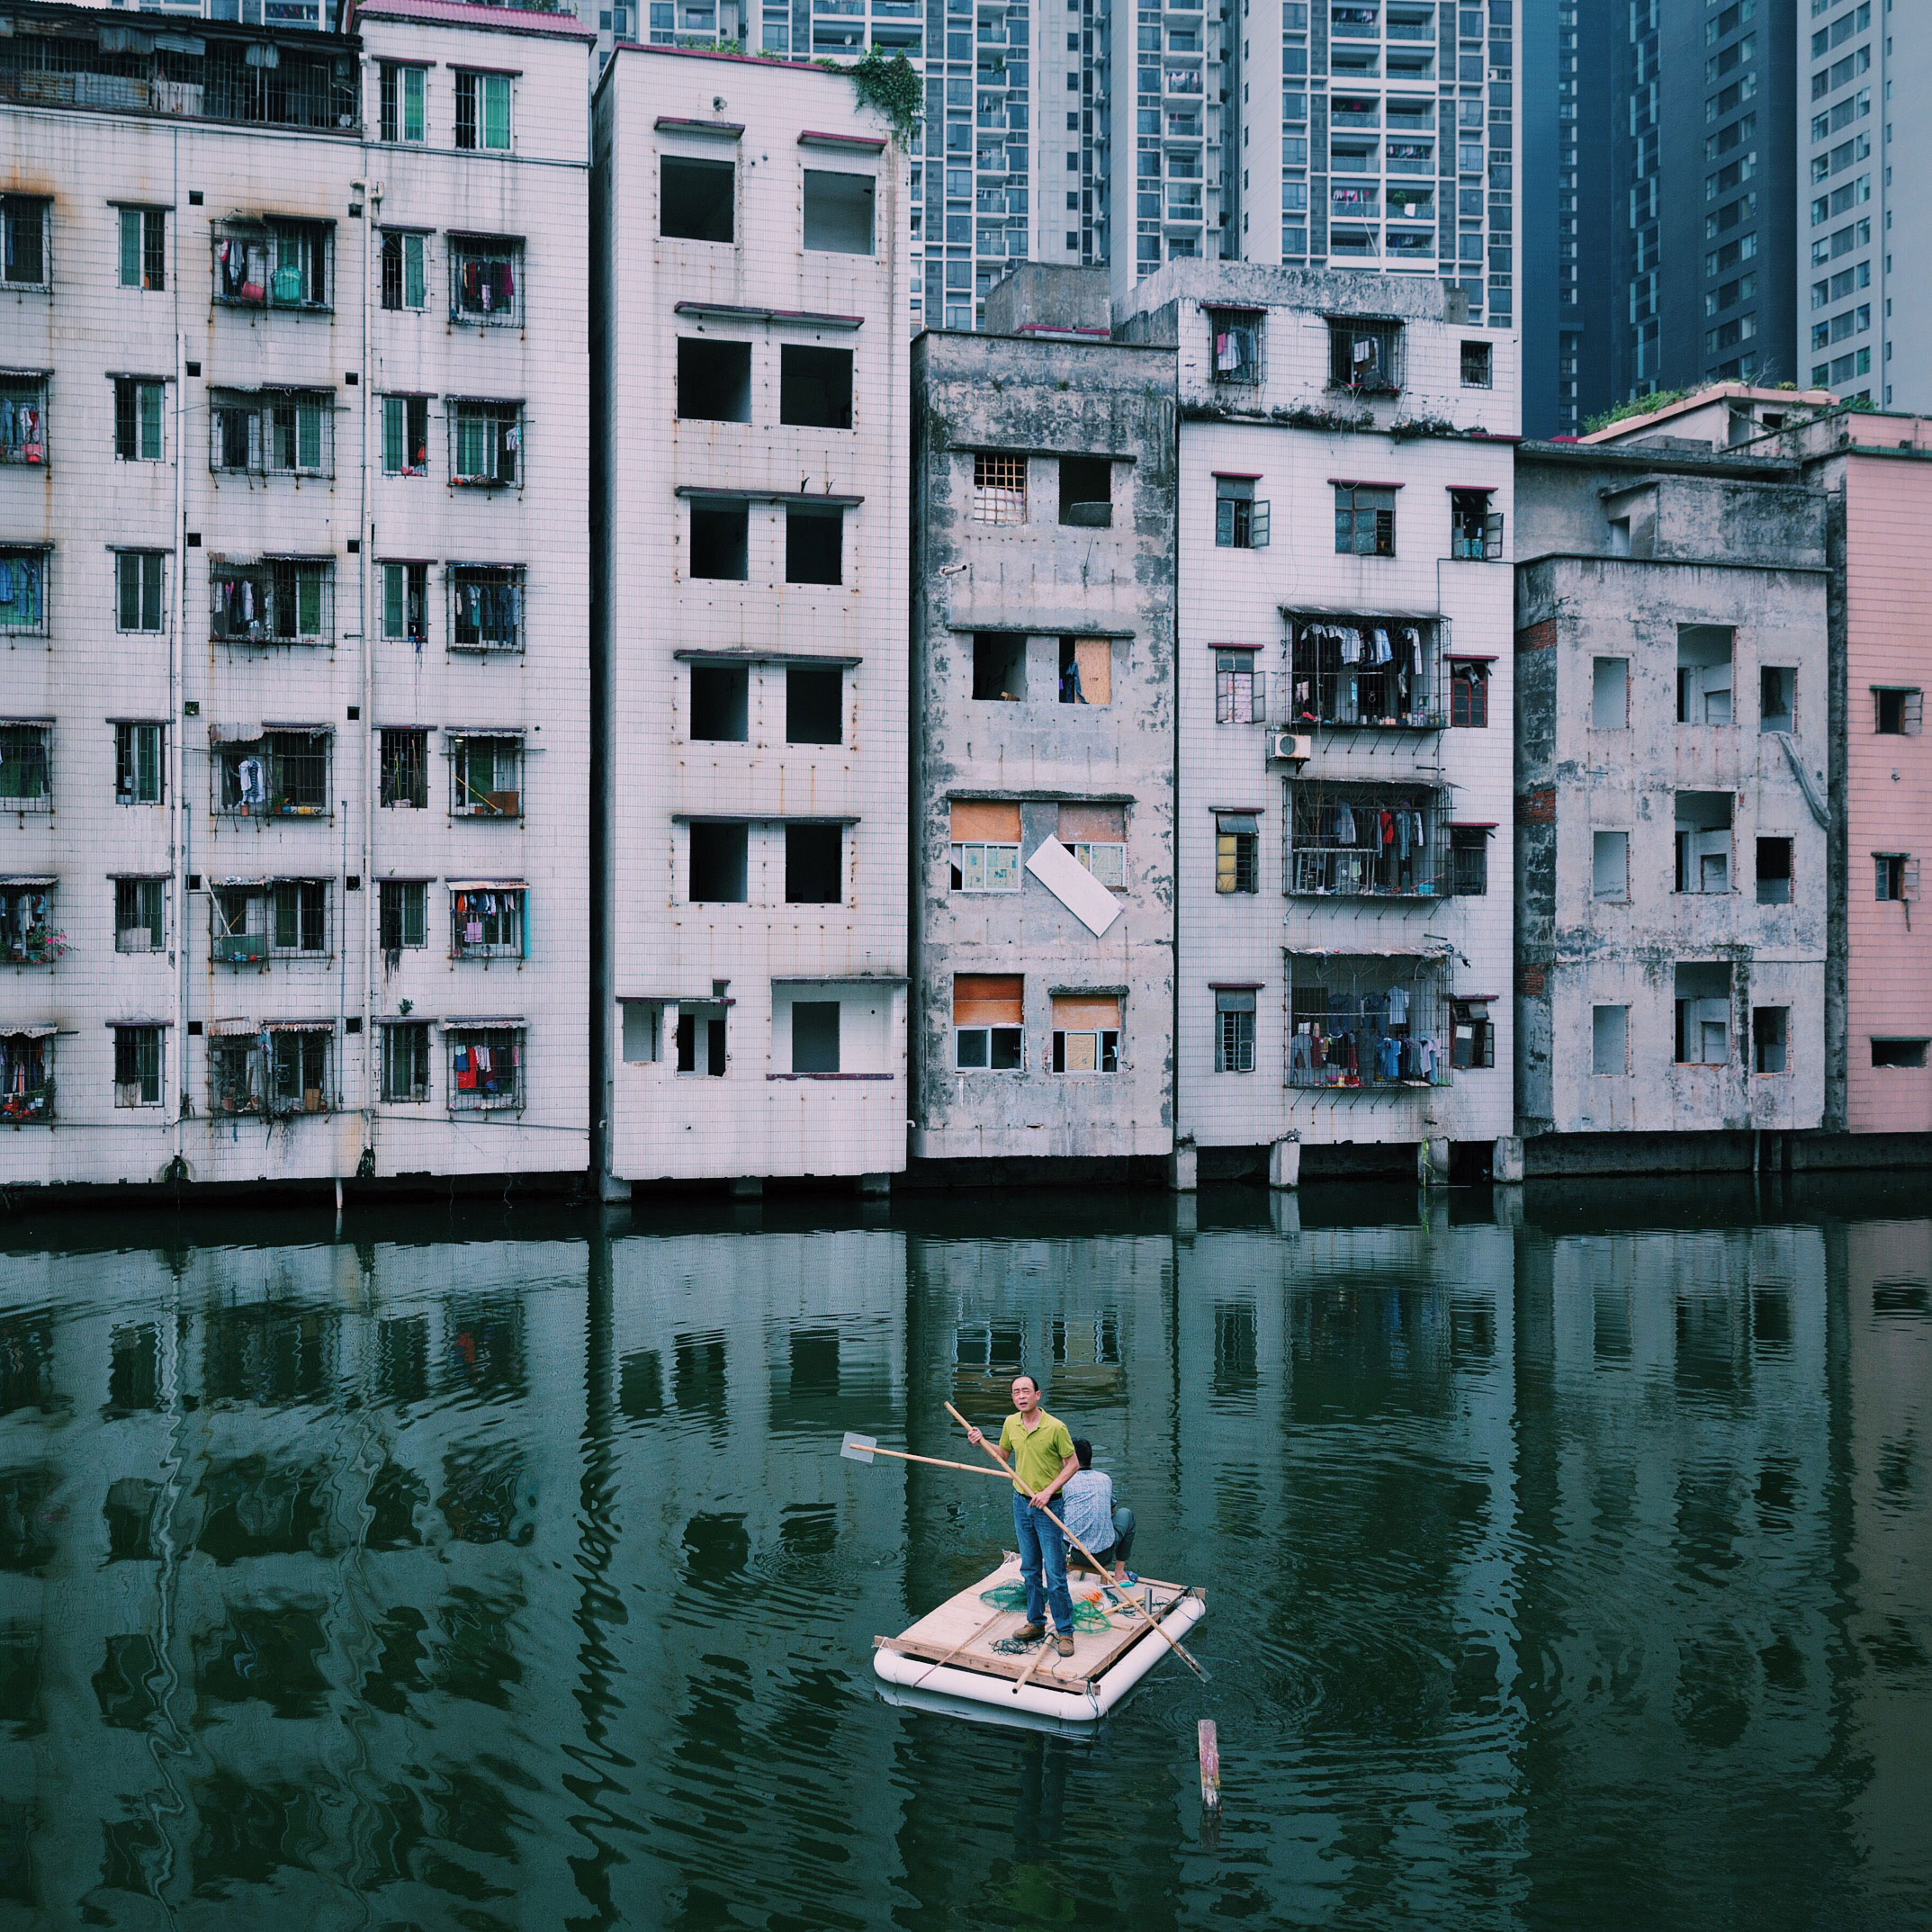 Two men fish in a pond in Xian Village, which is in the city center of Guangzhou, China. A conflict between locals and real estate developers lasts for more than seven years because of the uneven compensation and the corruption of Xian village leaders.